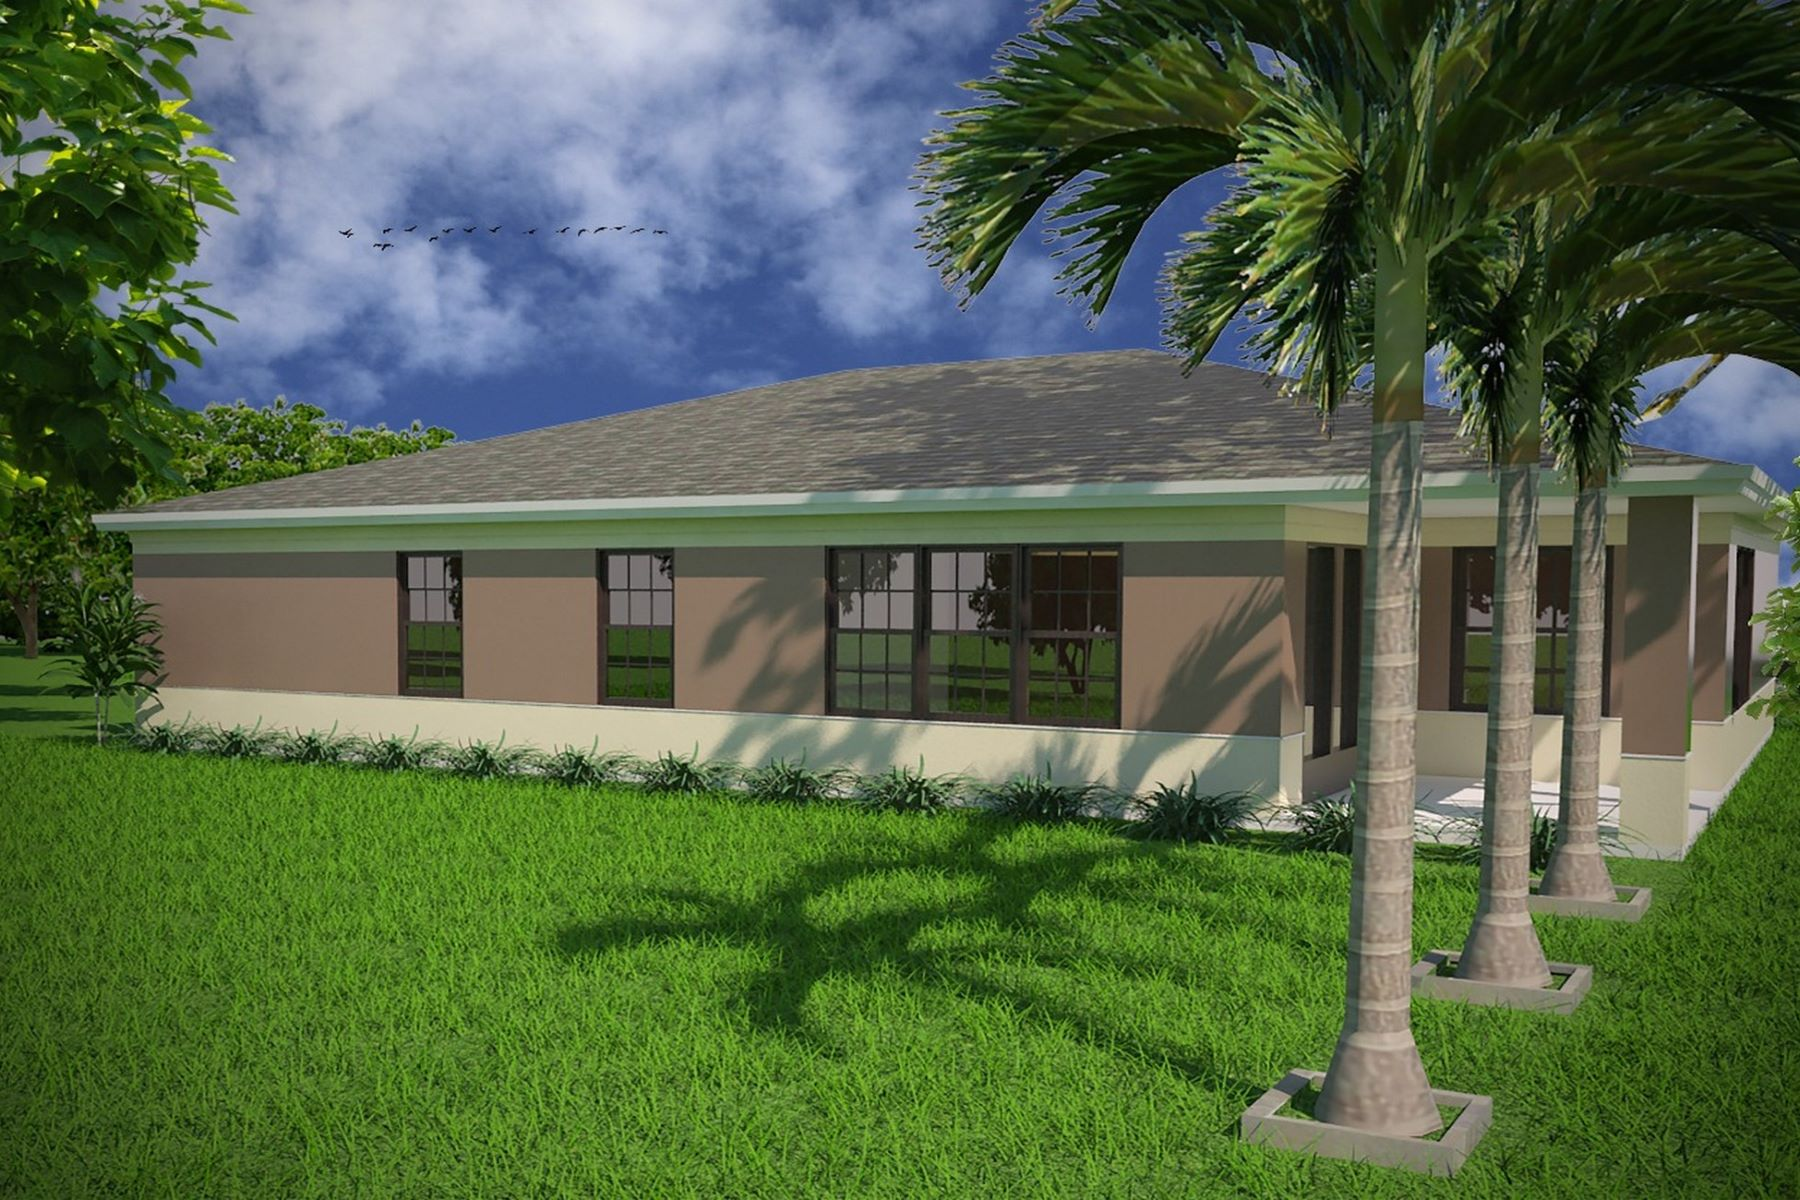 House for Rent at 4831 Sw Peters Rd 4831 Sw Peters Rd Plantation, Florida 33317 United States